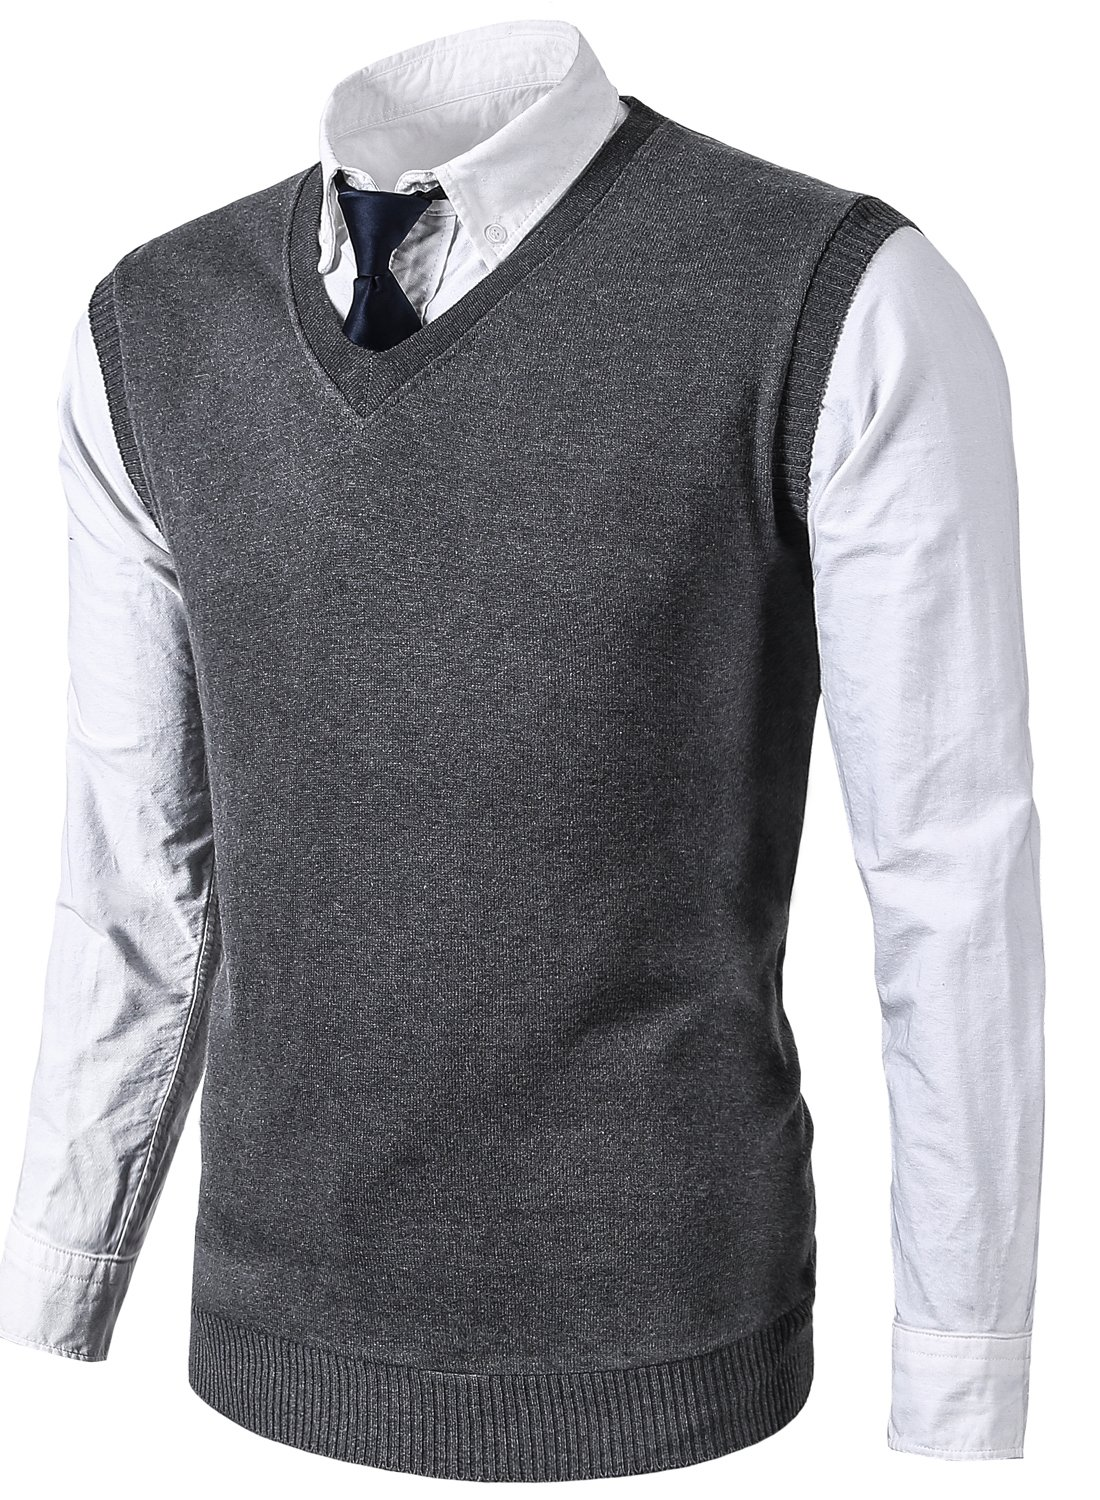 MIEDEON Mens Various Color Casual Slim Fit Knit Vest Sweater (L, Grey)